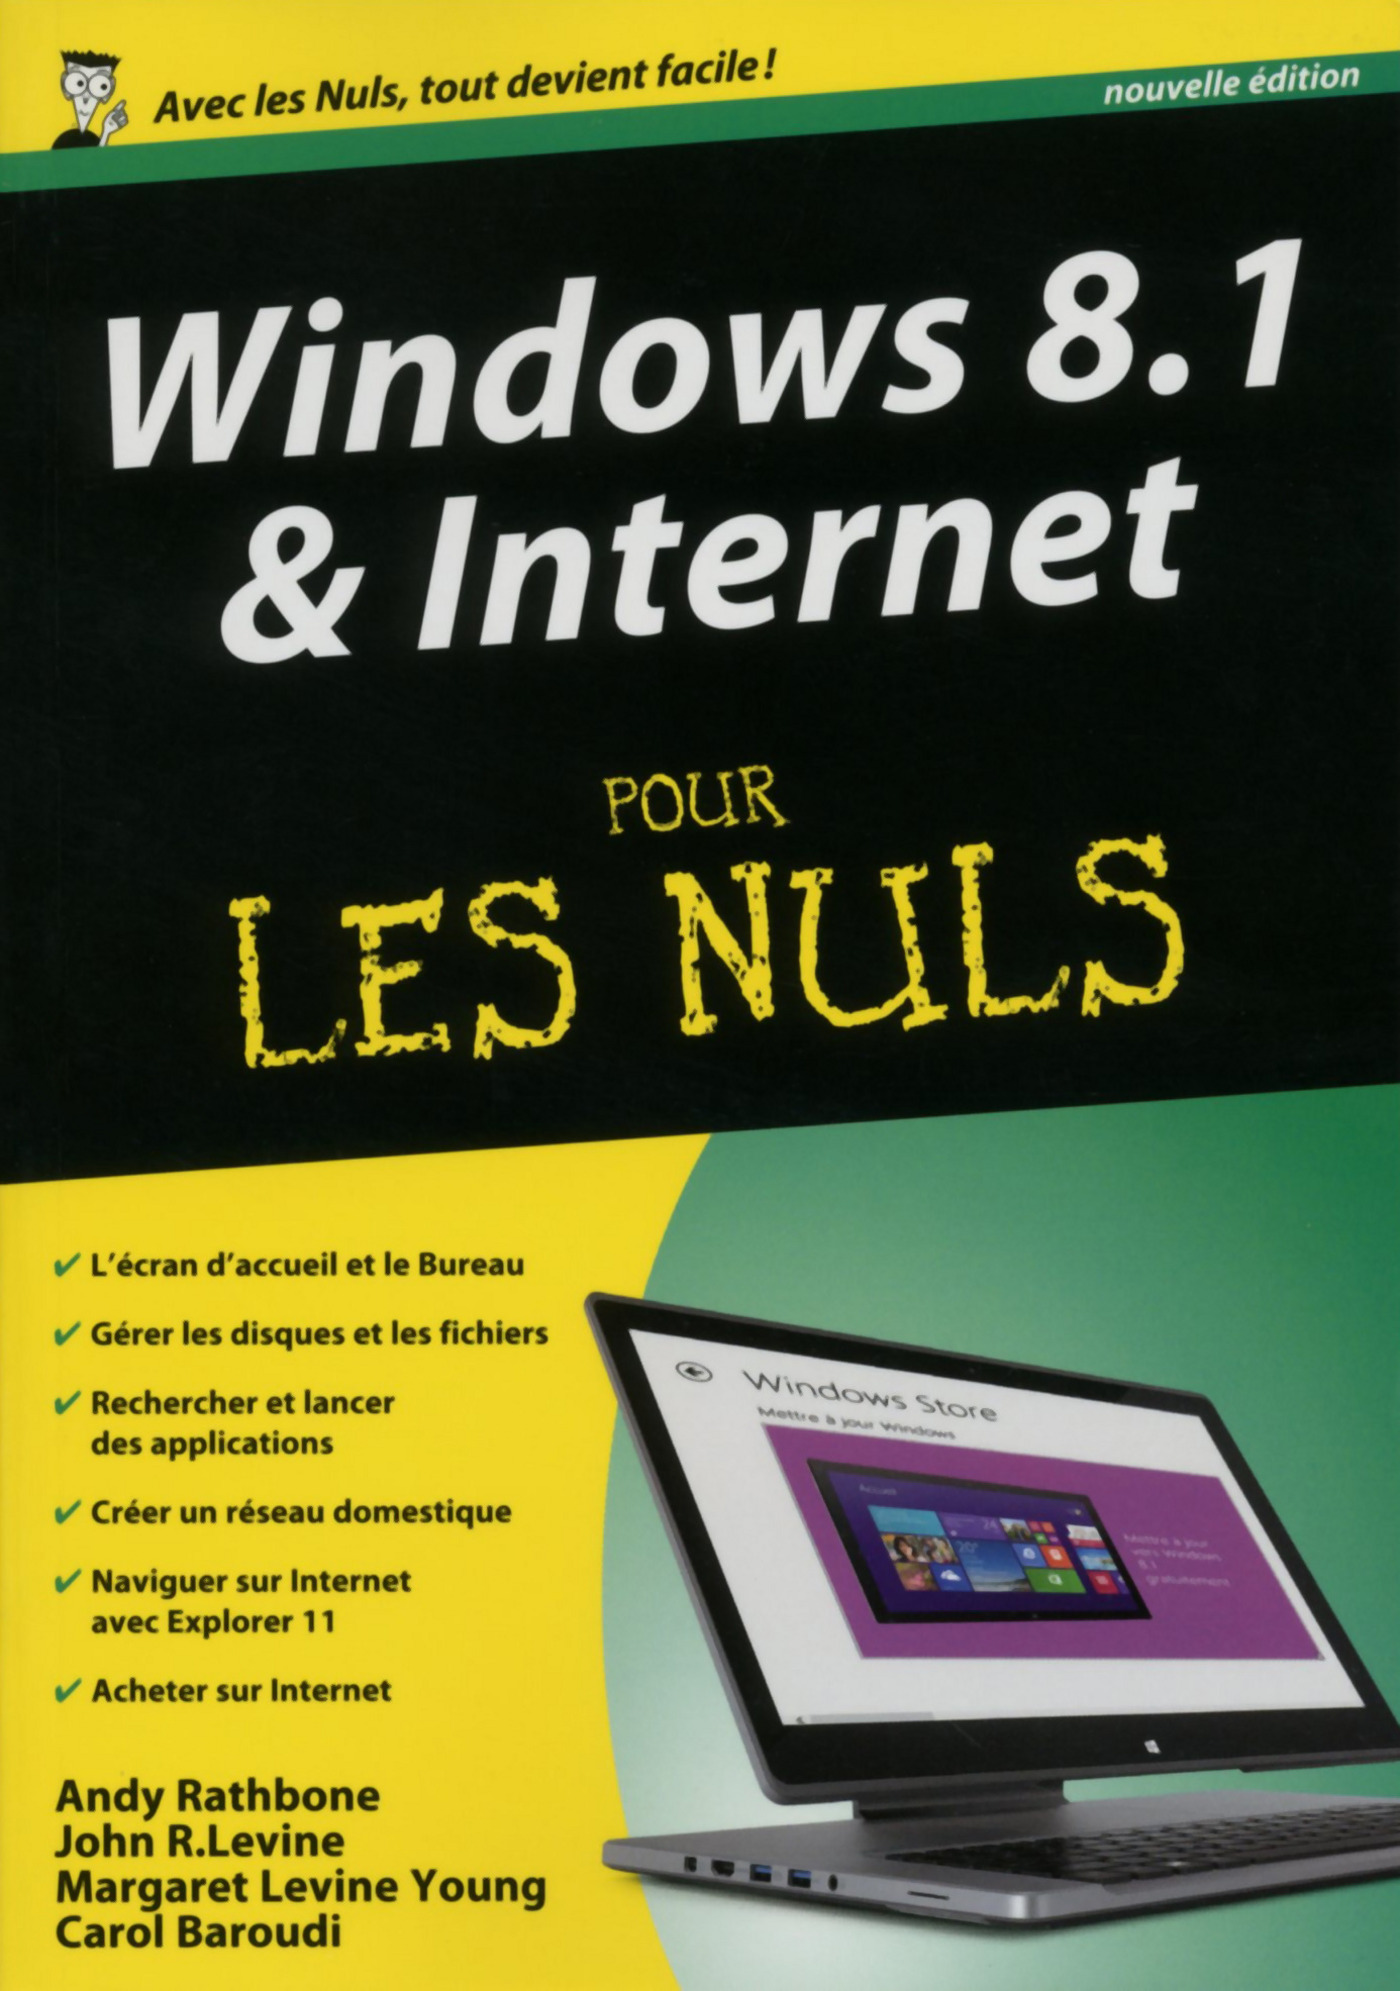 Vignette du livre Windows 8.1 & internet -megapo.. nuls-ne